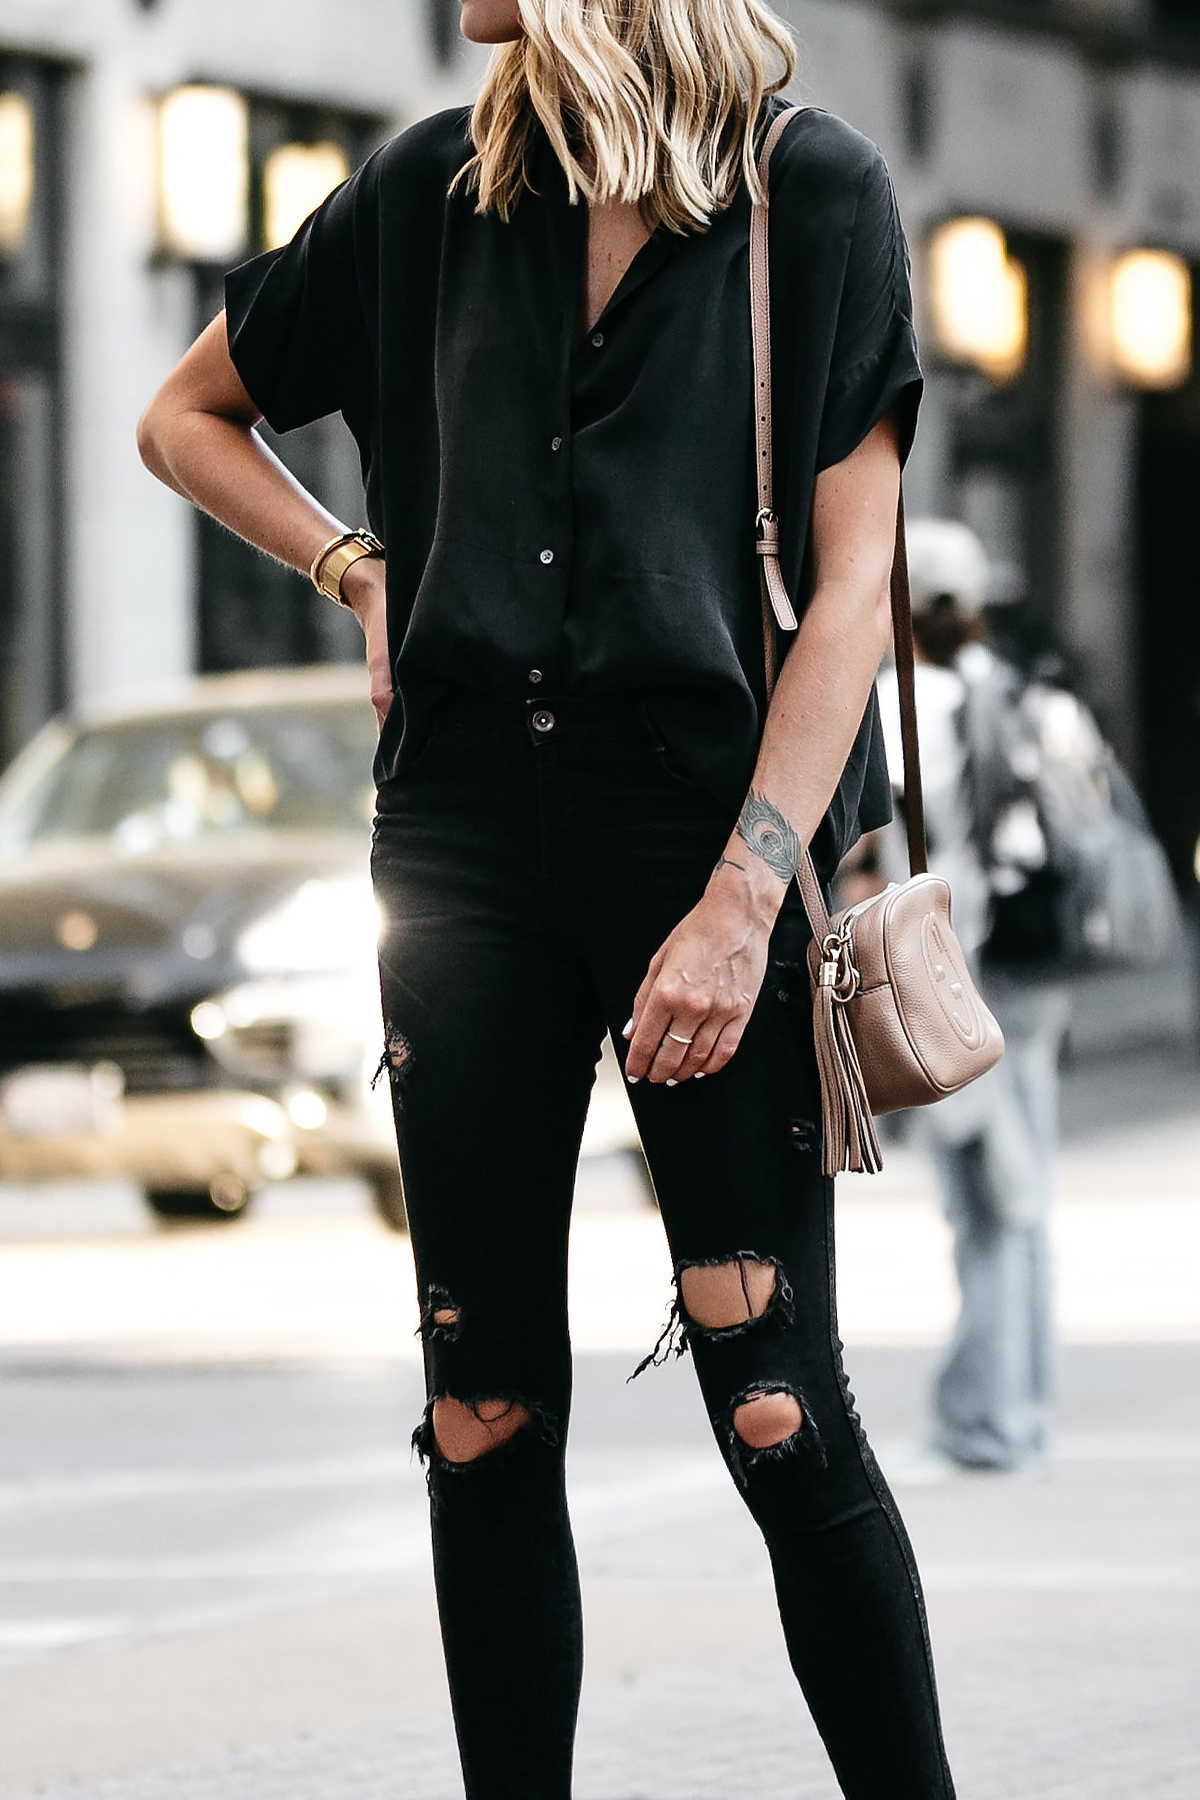 Blonde Woman Wearing Everlane Black Short Sleeve Button Up Shirt Zara Black Ripped Skinny Jeans Outfit Fashion Jackson Dallas Blogger Fashion Blogger